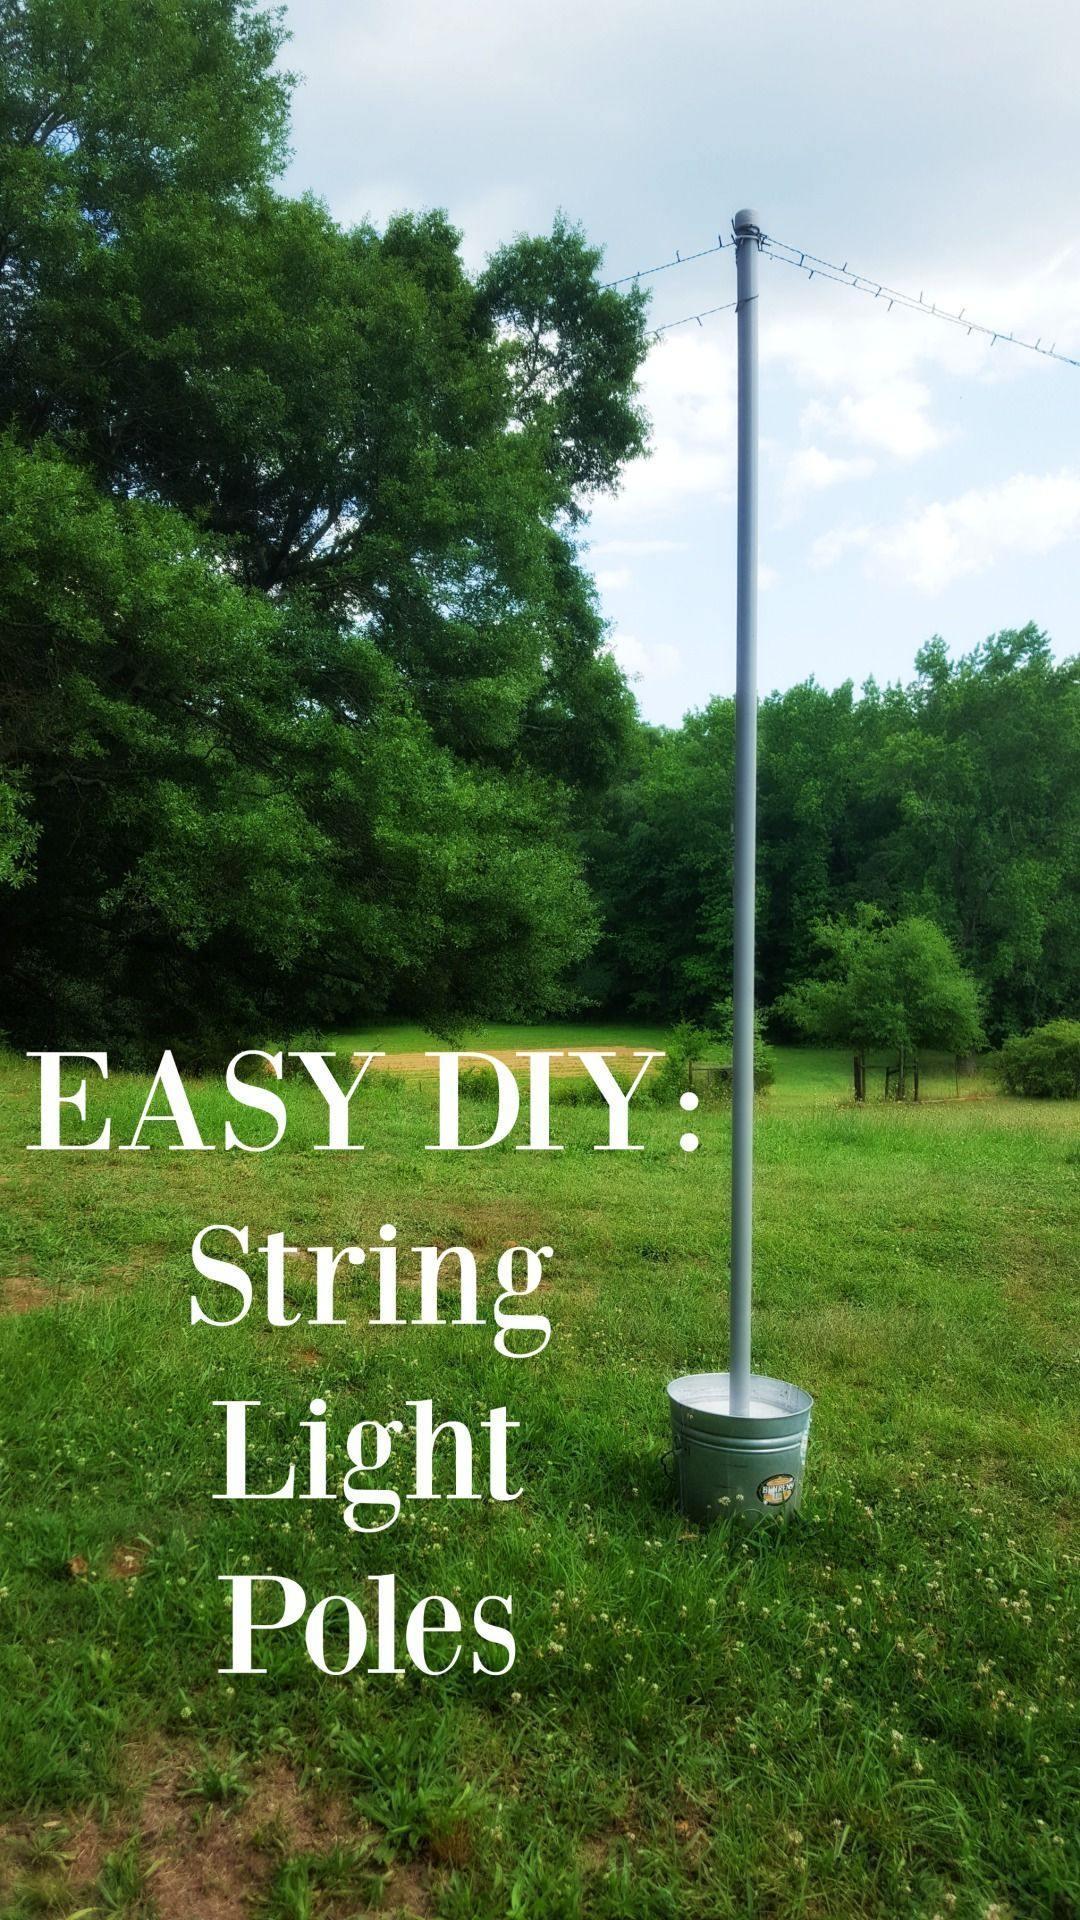 String Lights Pole : DIY string light poles in under one hour for less than USD 100 Easy, Lights and Bonfires